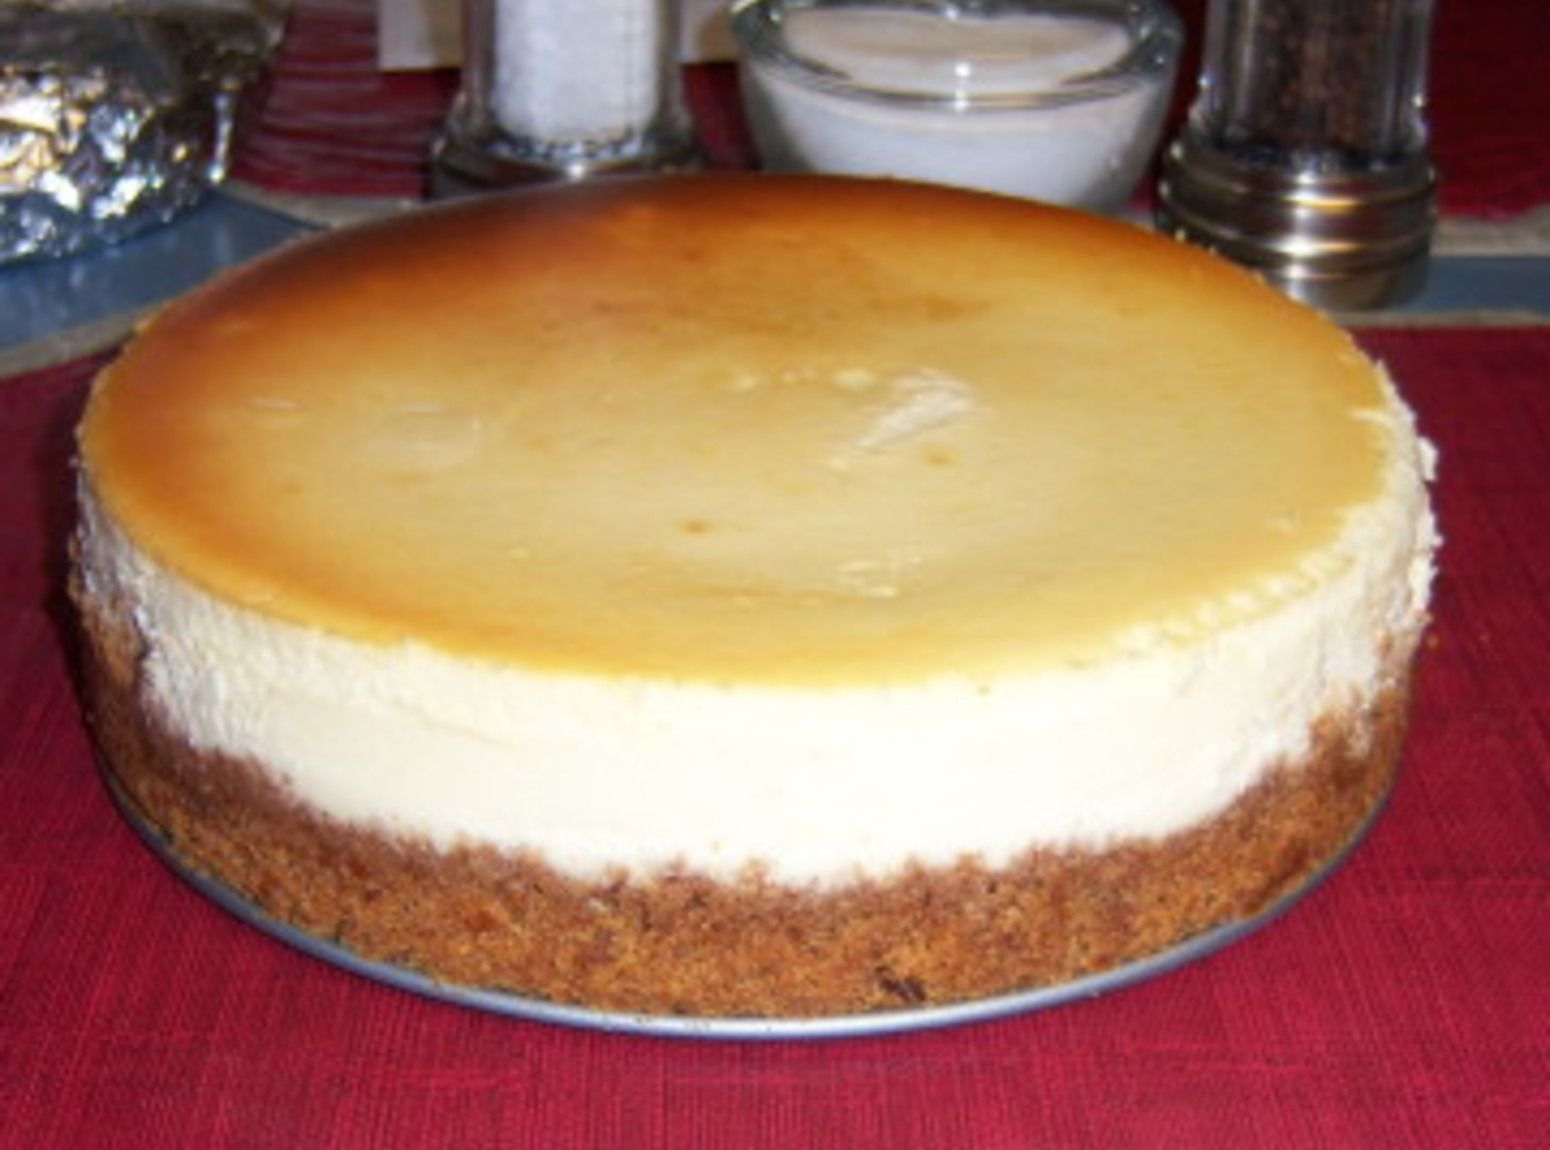 Crack Proof: New York Style Cheese Cake